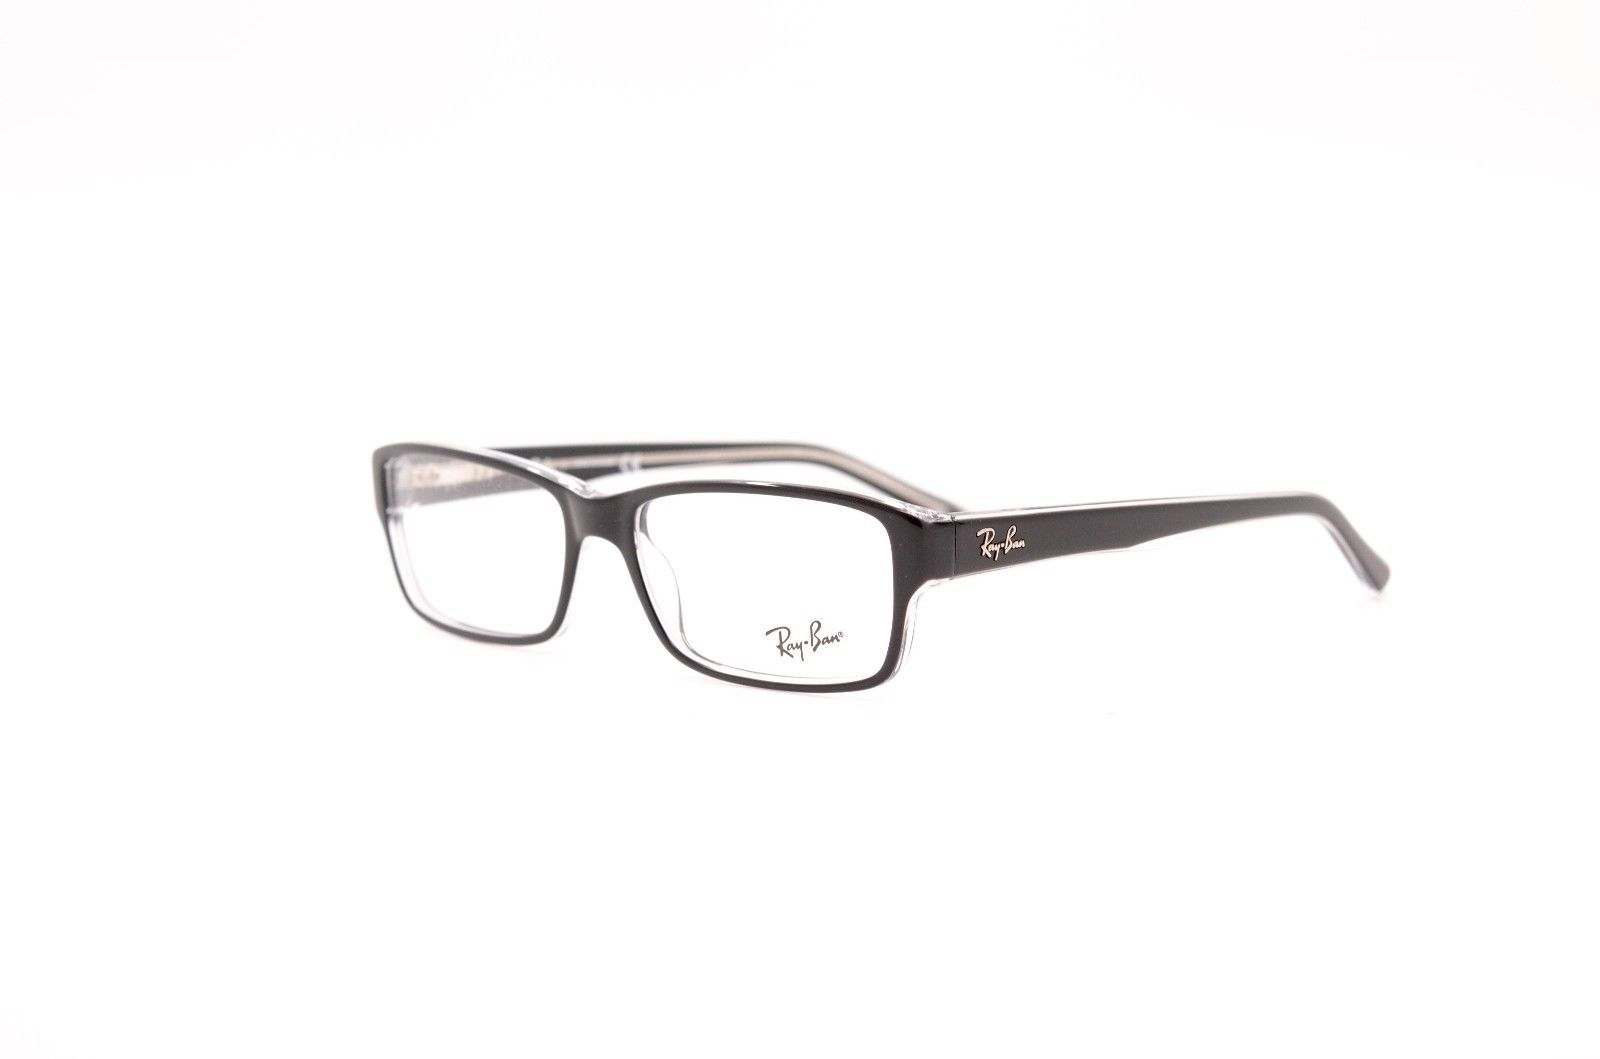 7e907b4bbe Ray Ban Model Rb 5169 « One More Soul